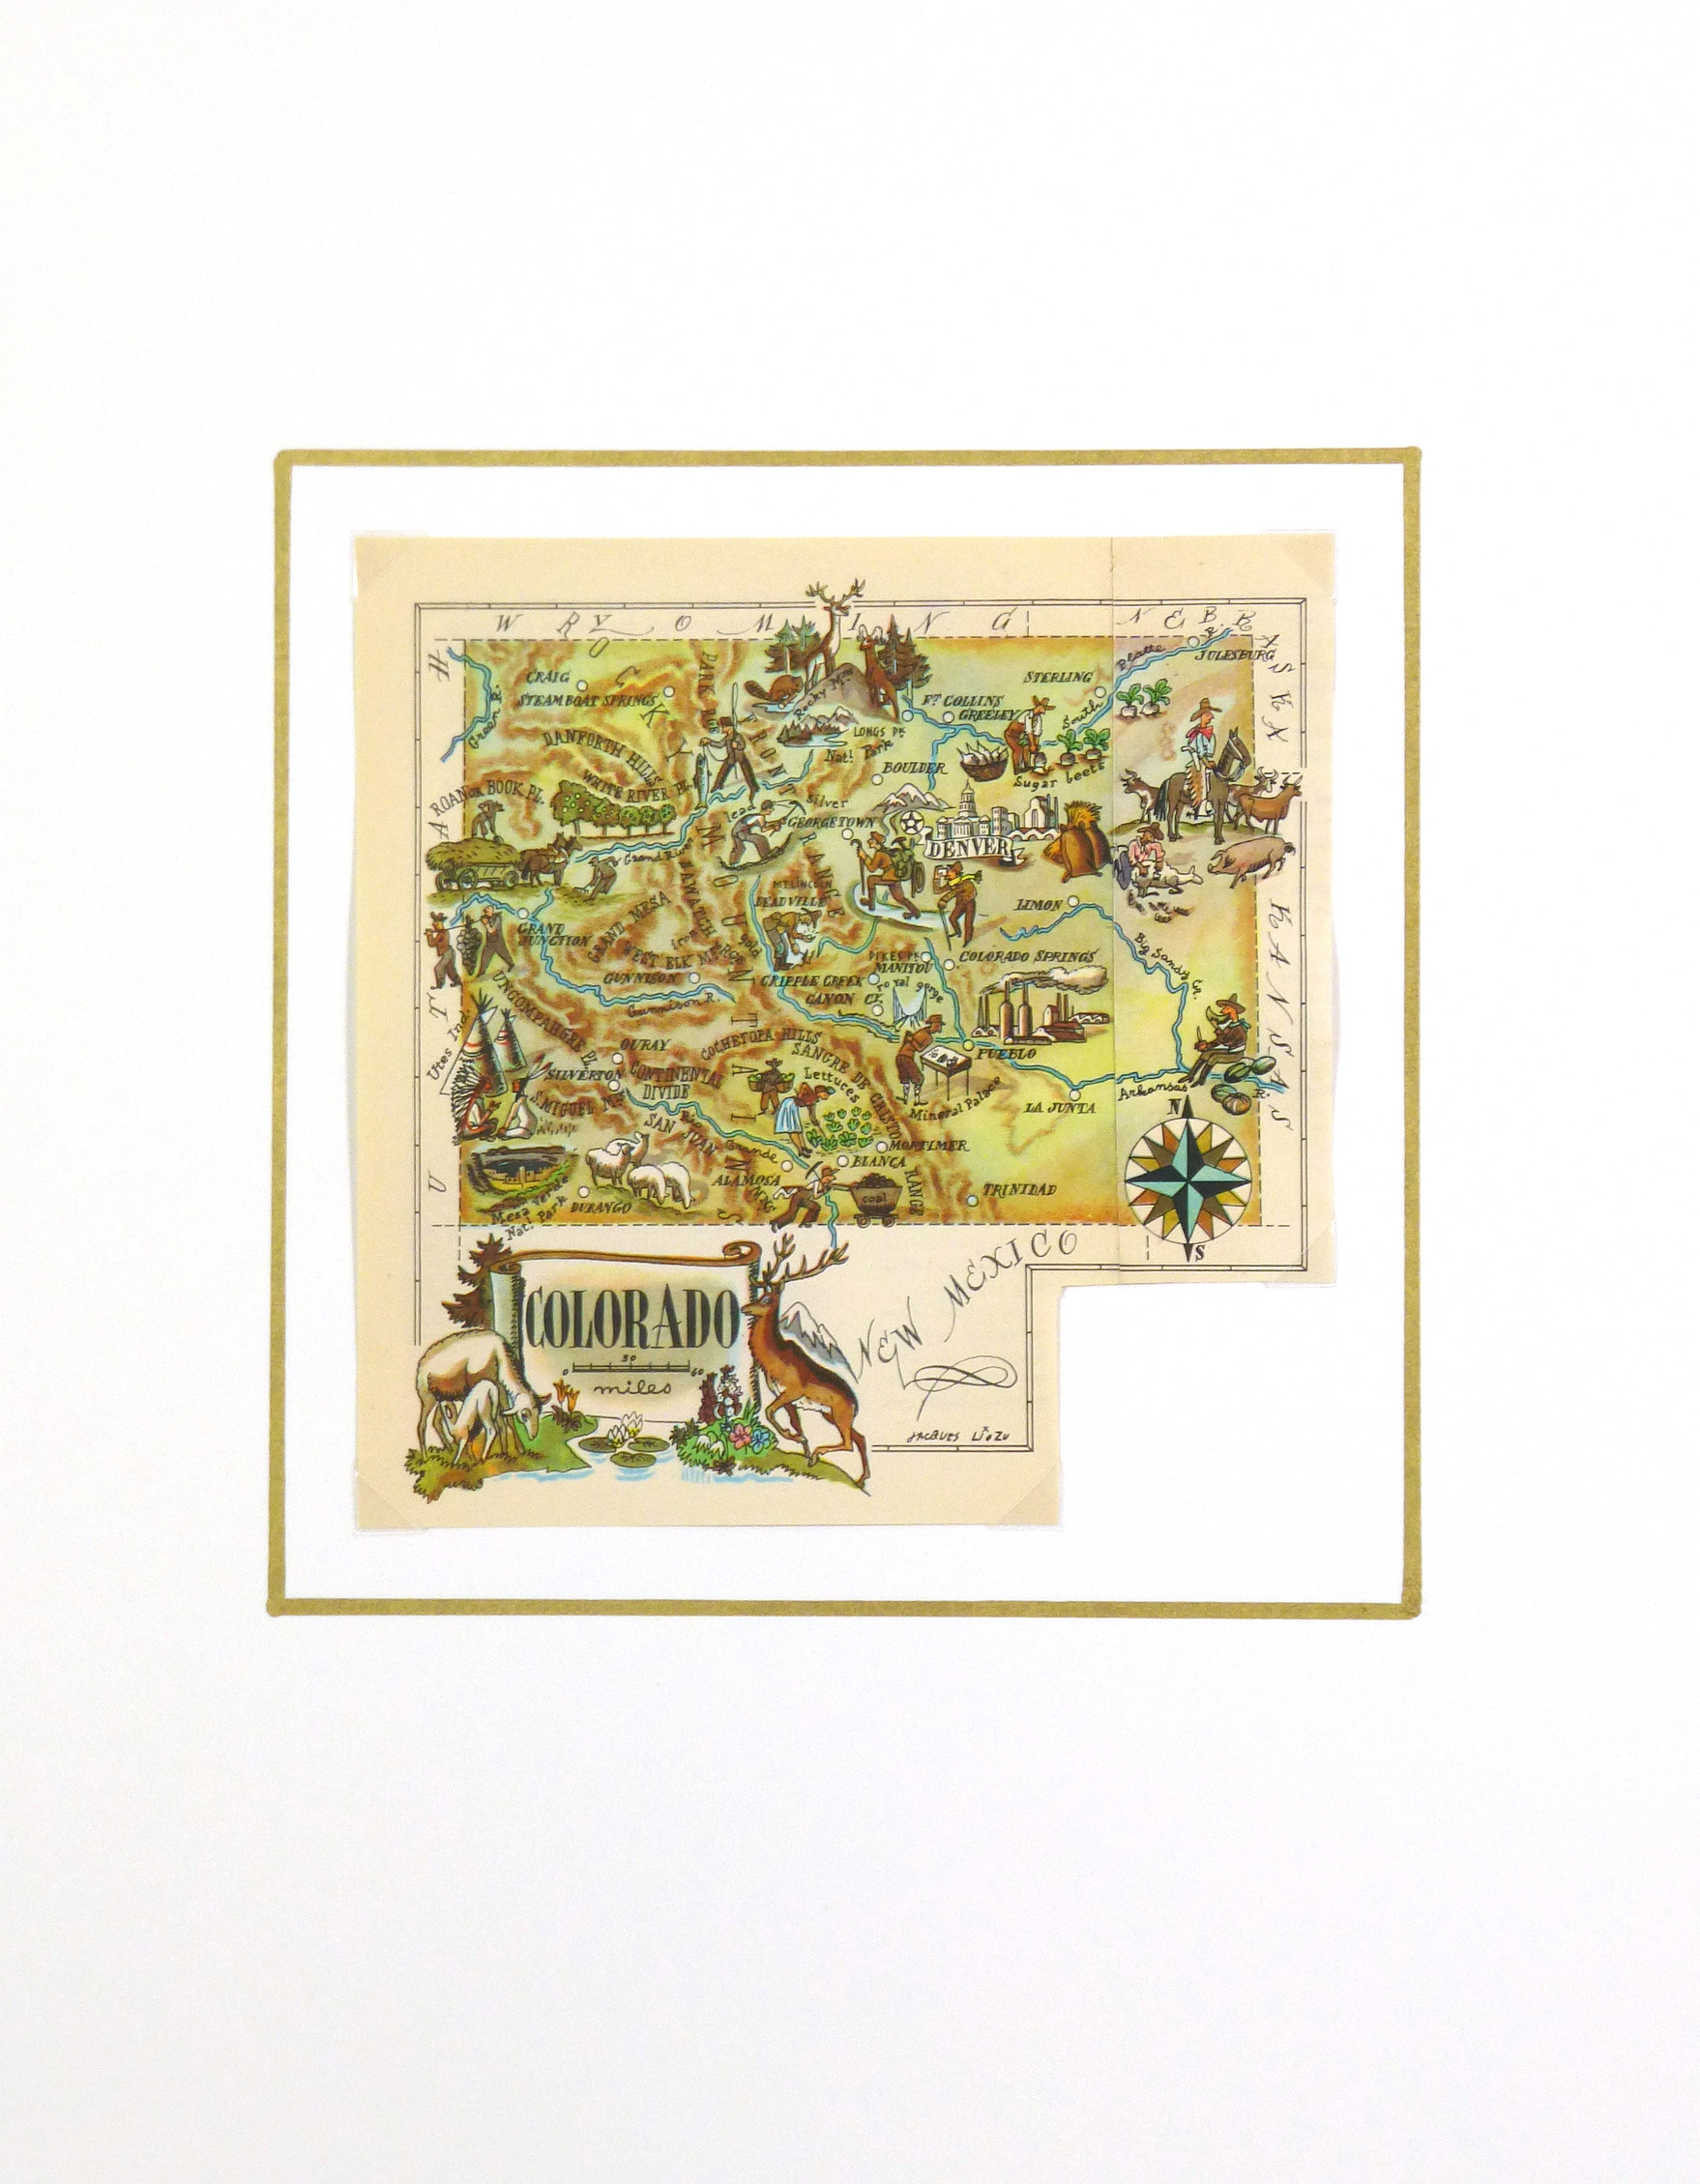 Pictorial Map - Colorado, 1946-matted-6257K